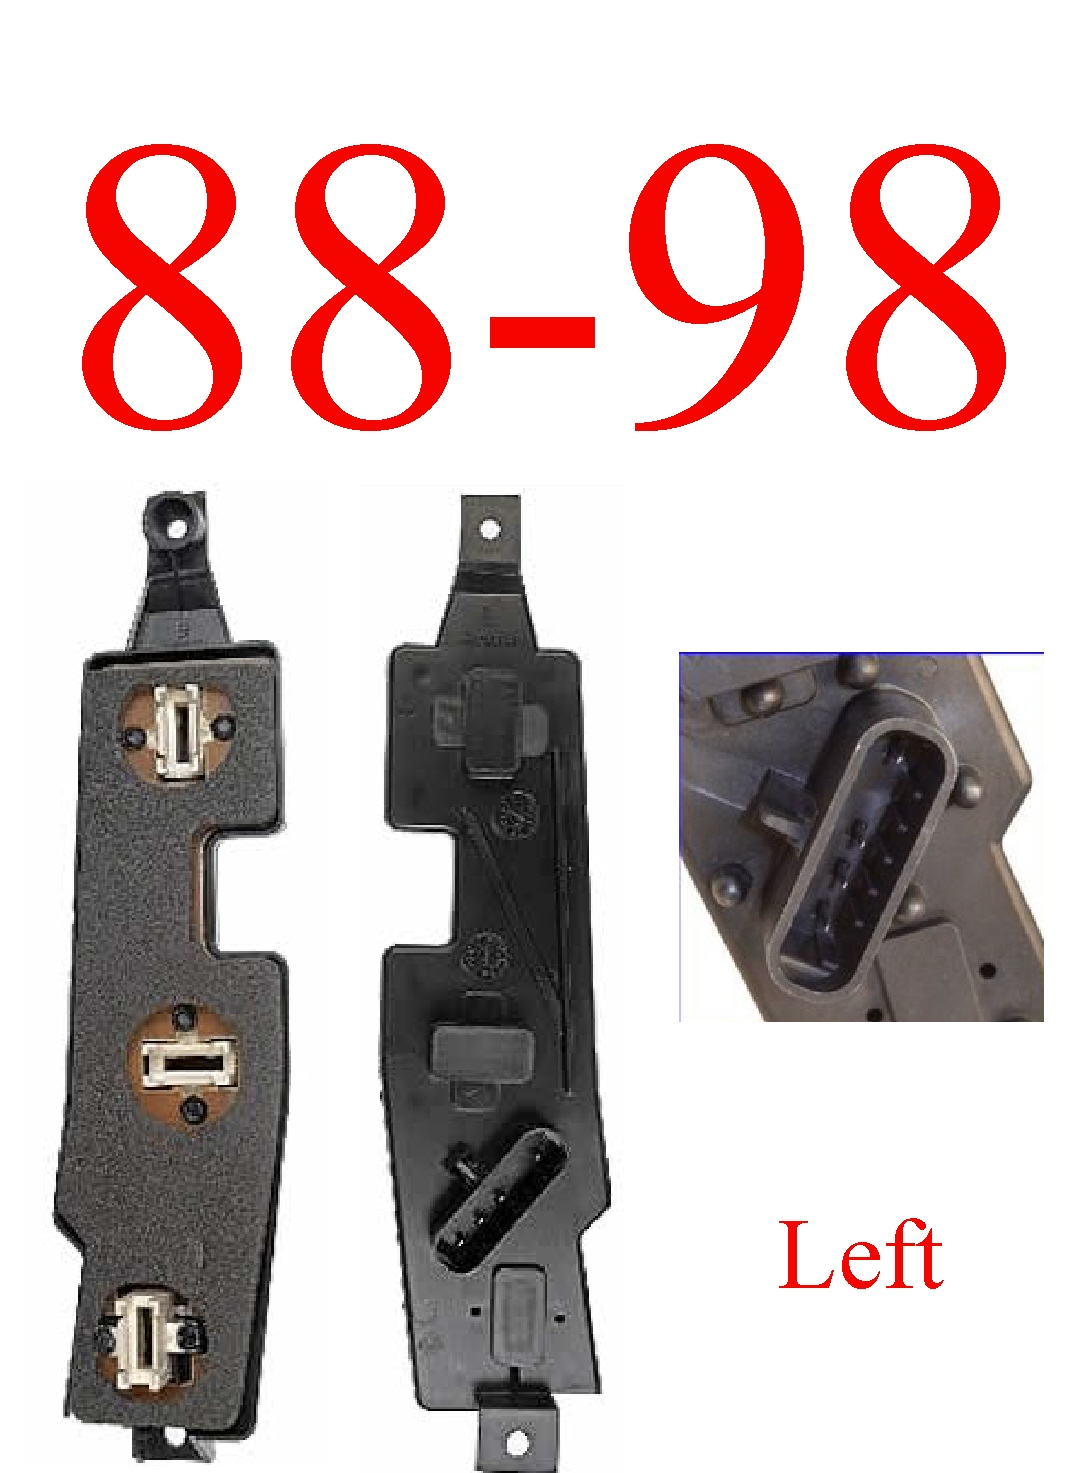 88-98 Chevy GMC Right Tail Light Connector Plate